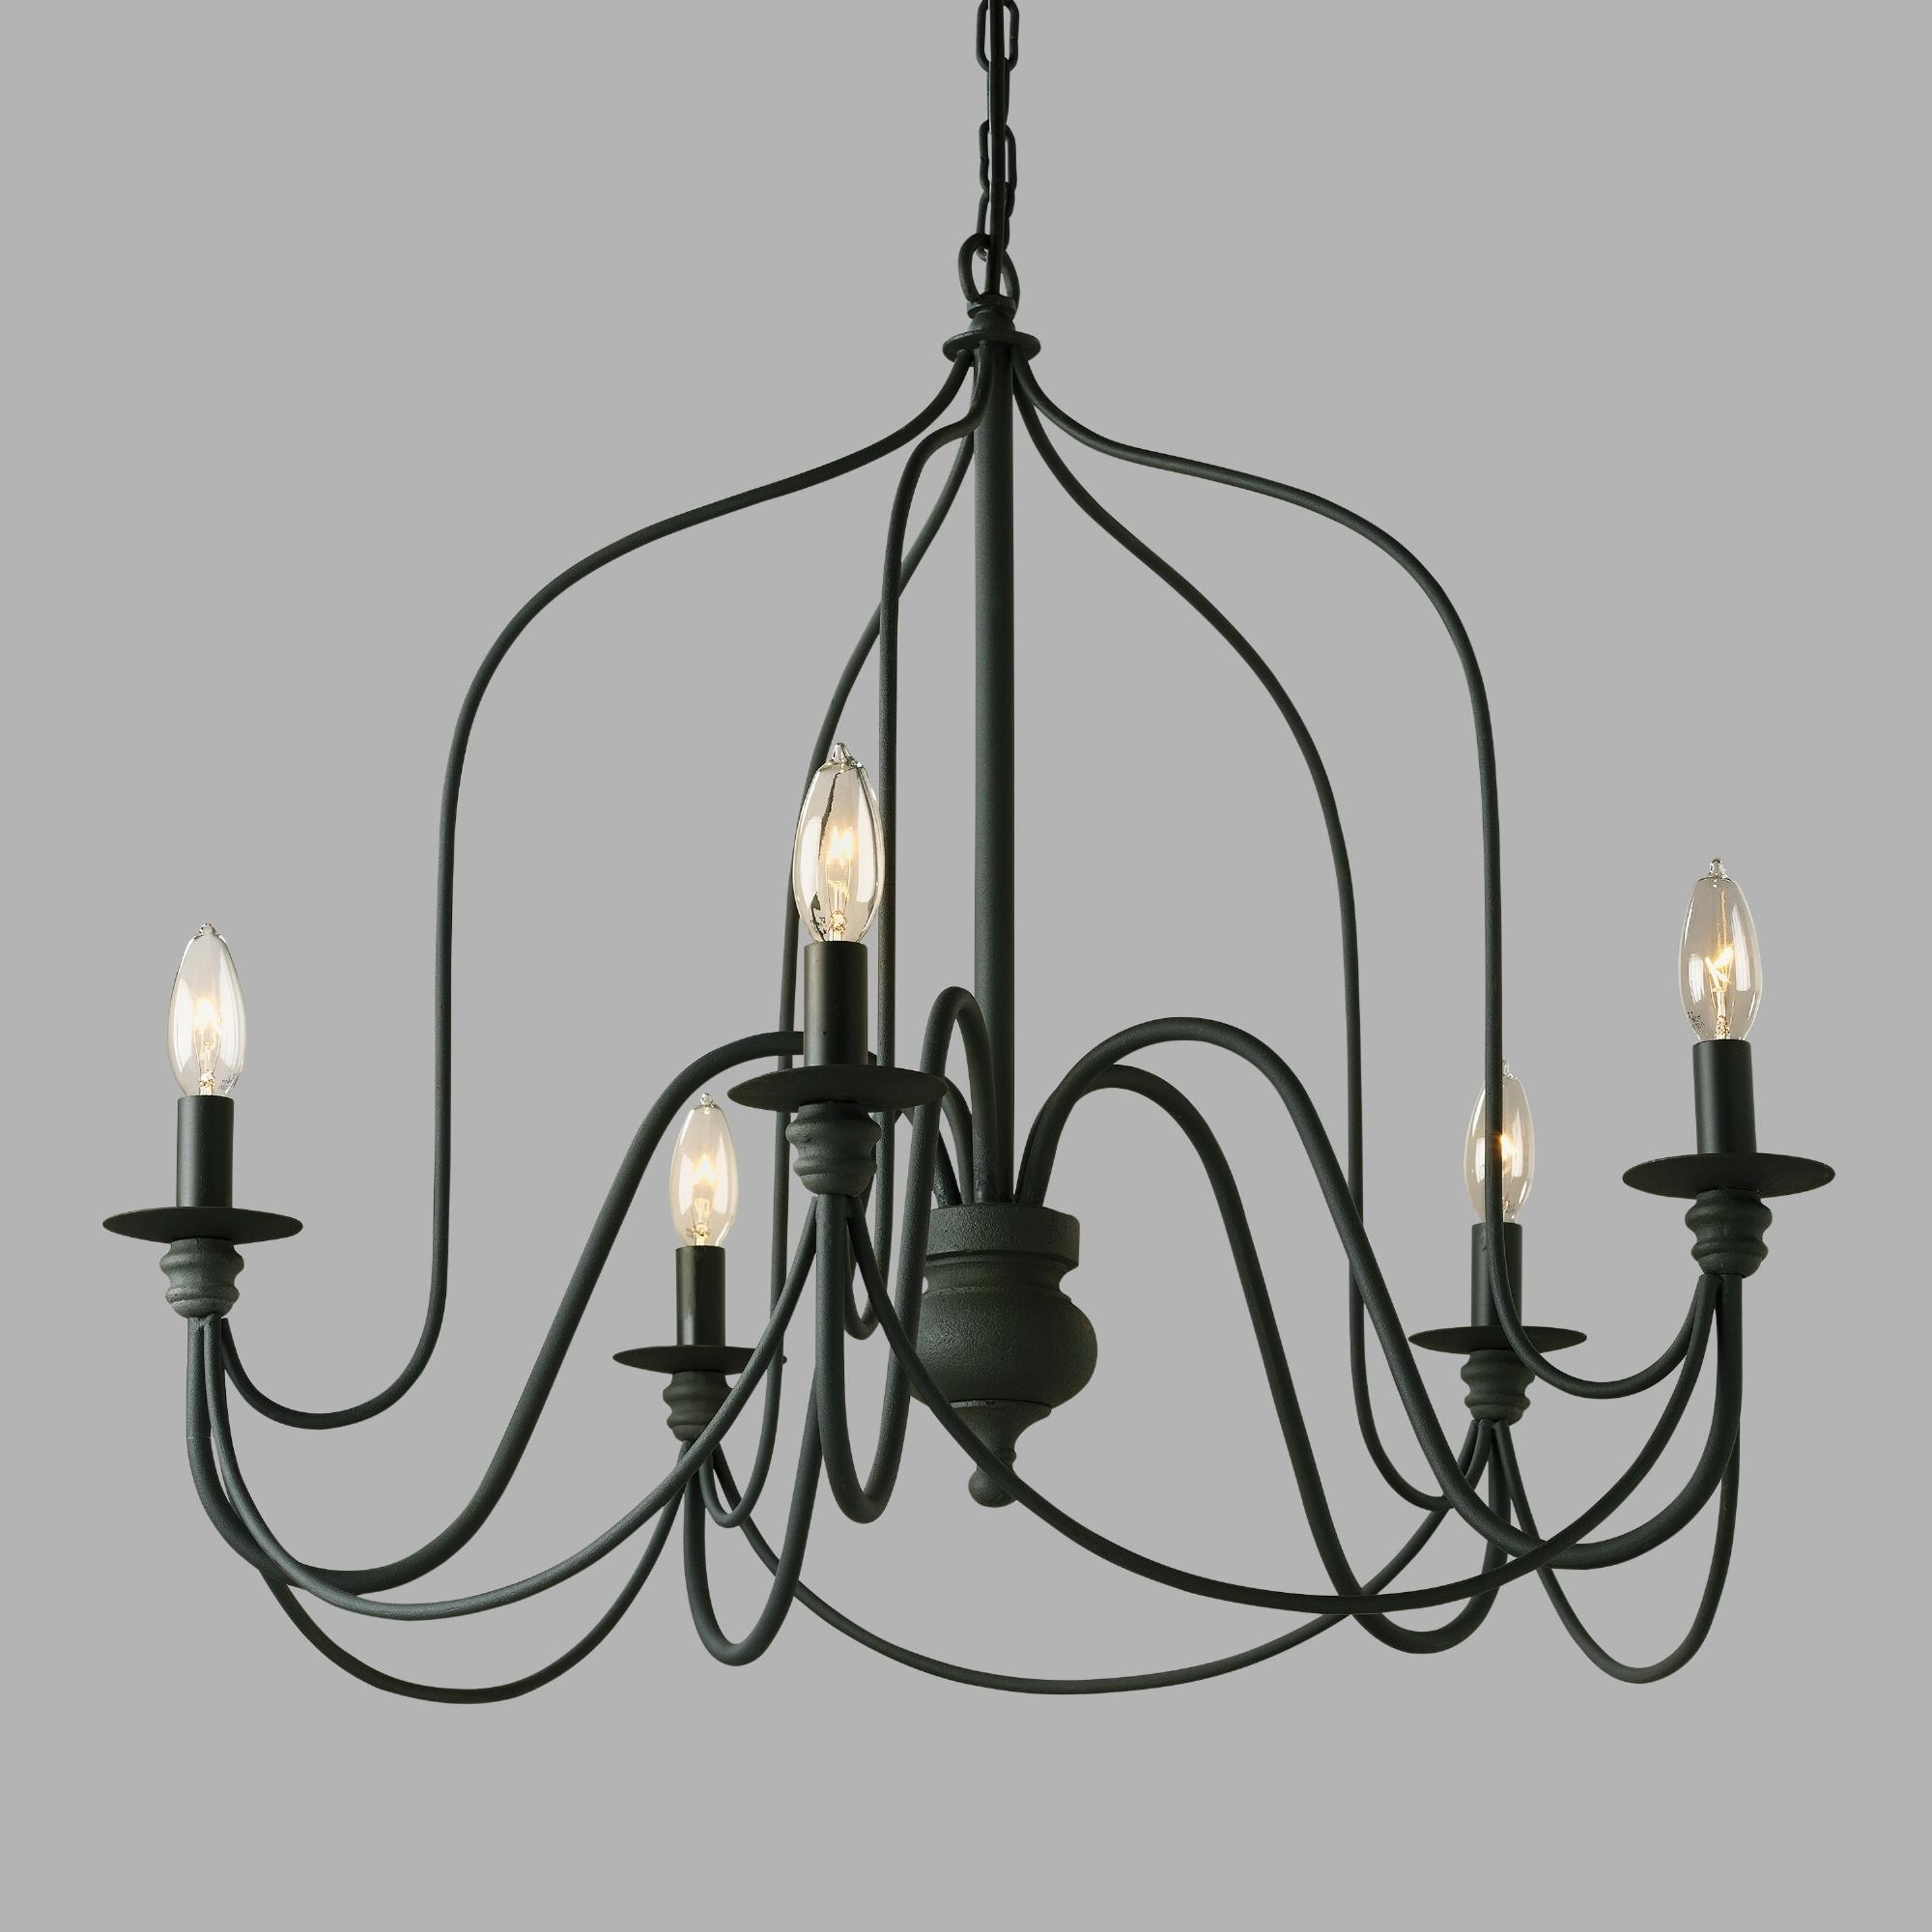 Chandeliers Design : Fabulous Candle Chandeliers Beautiful Excellent With Regard To Widely Used Hanging Candelabra Chandeliers (View 8 of 20)